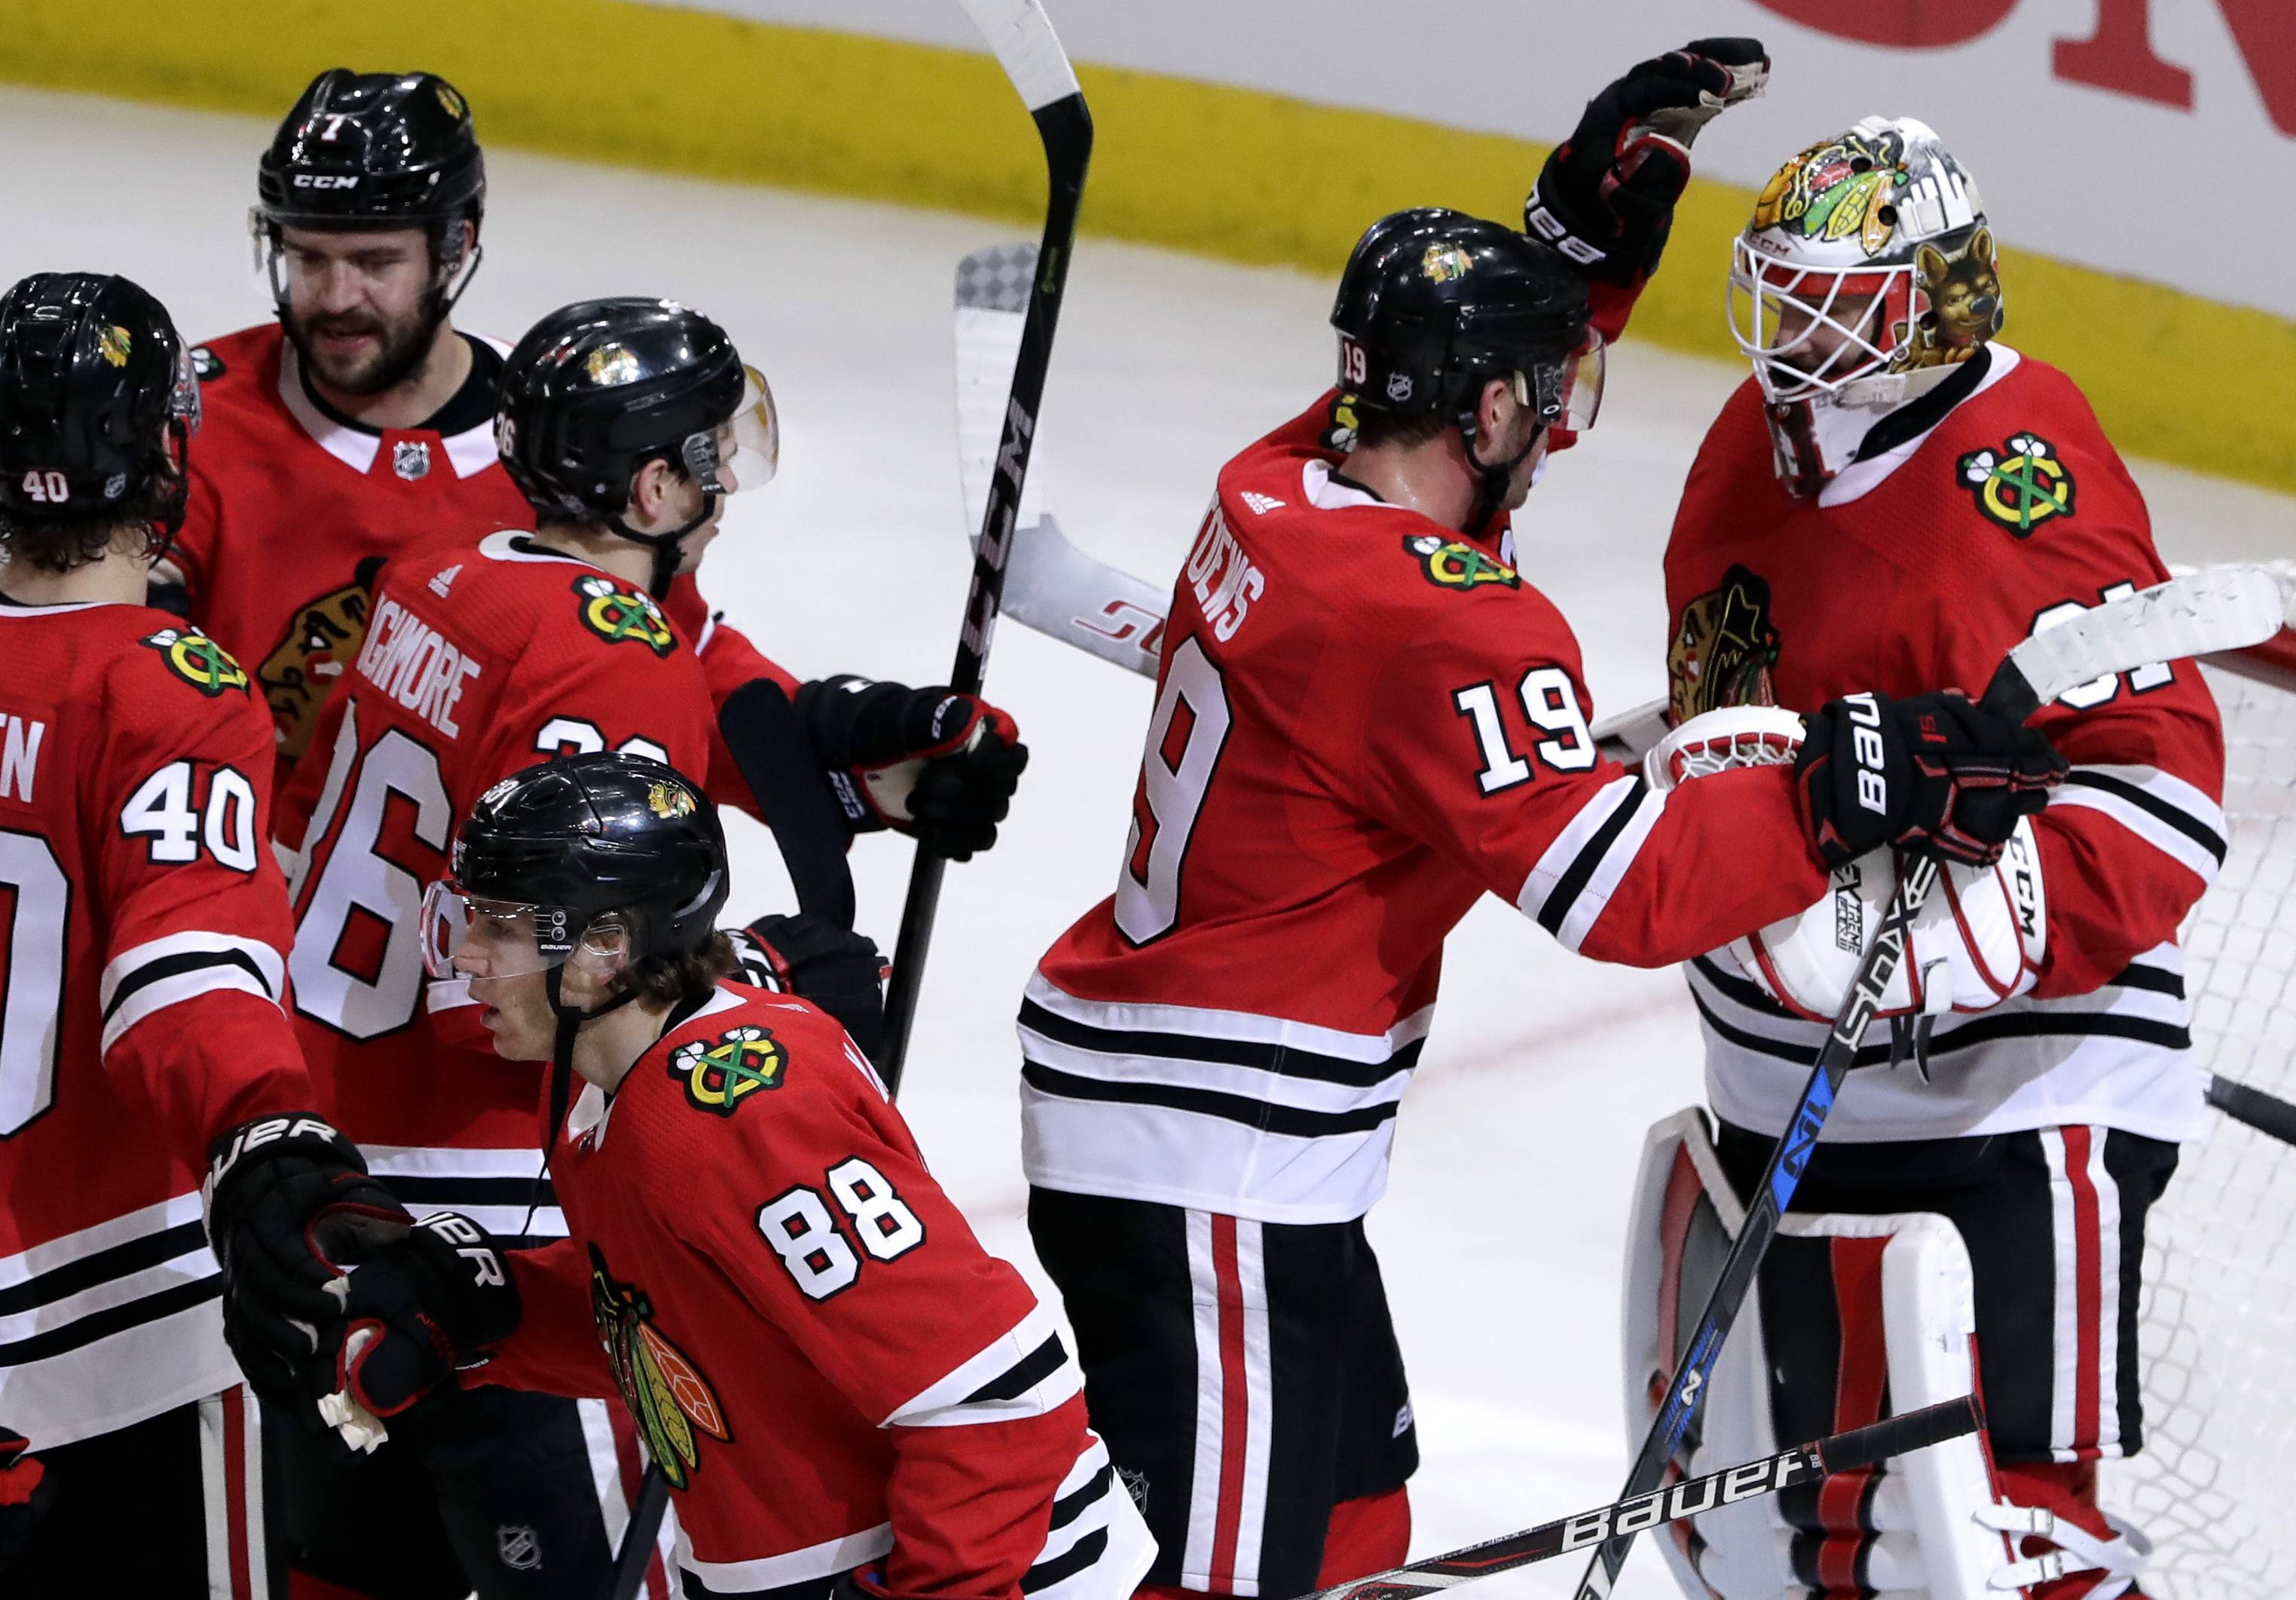 Chicago Blackhawks goalie Anton Forsberg, right, celebrates with center Jonathan Toews after the Blackhawks defeated the Boston Bruins 3-1 in an NHL hockey game Sunday, March 11, 2018, in Chicago.